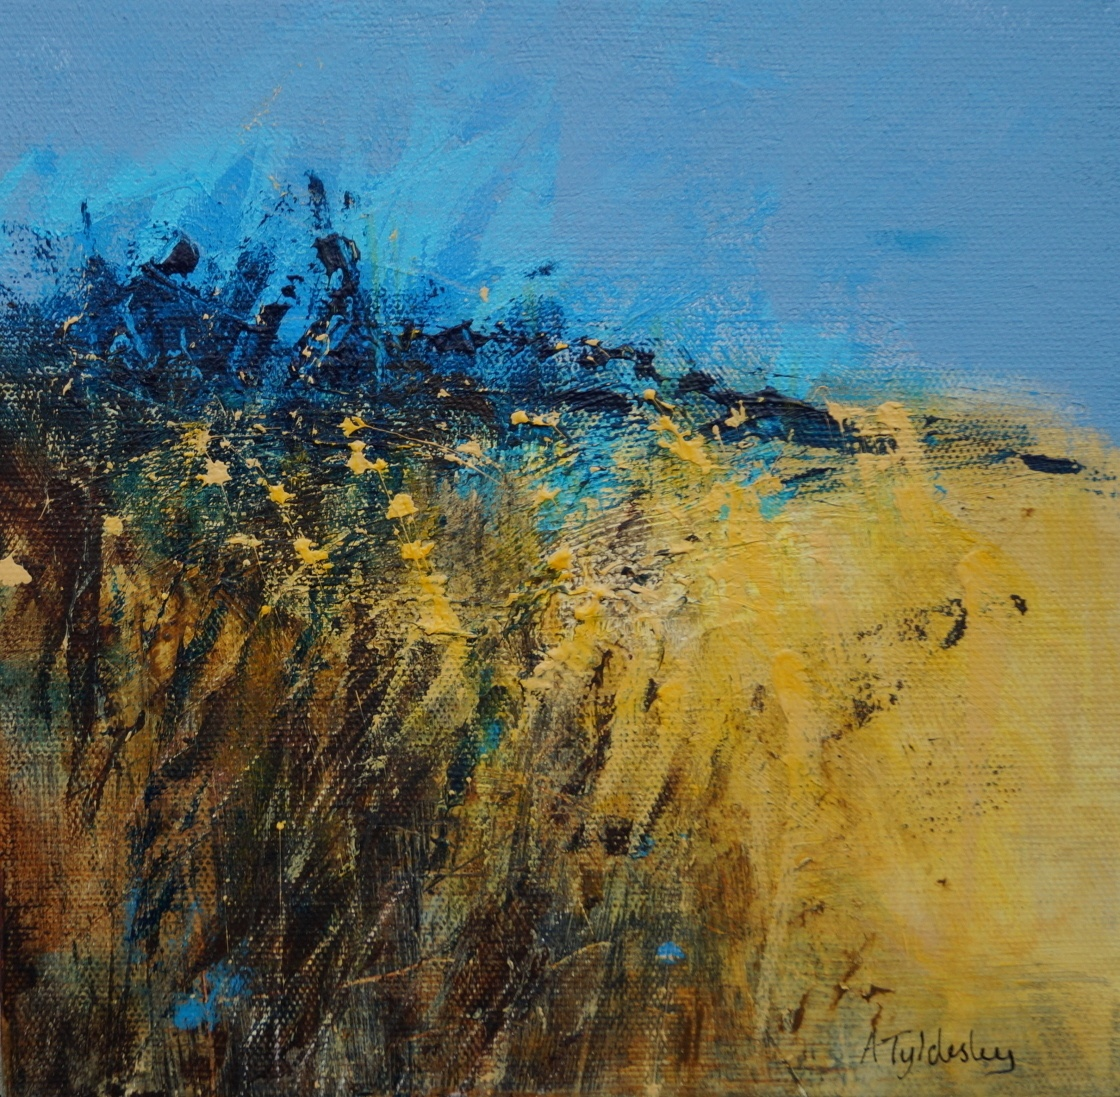 7 Turquoise Summer Sky 22 x 22cm